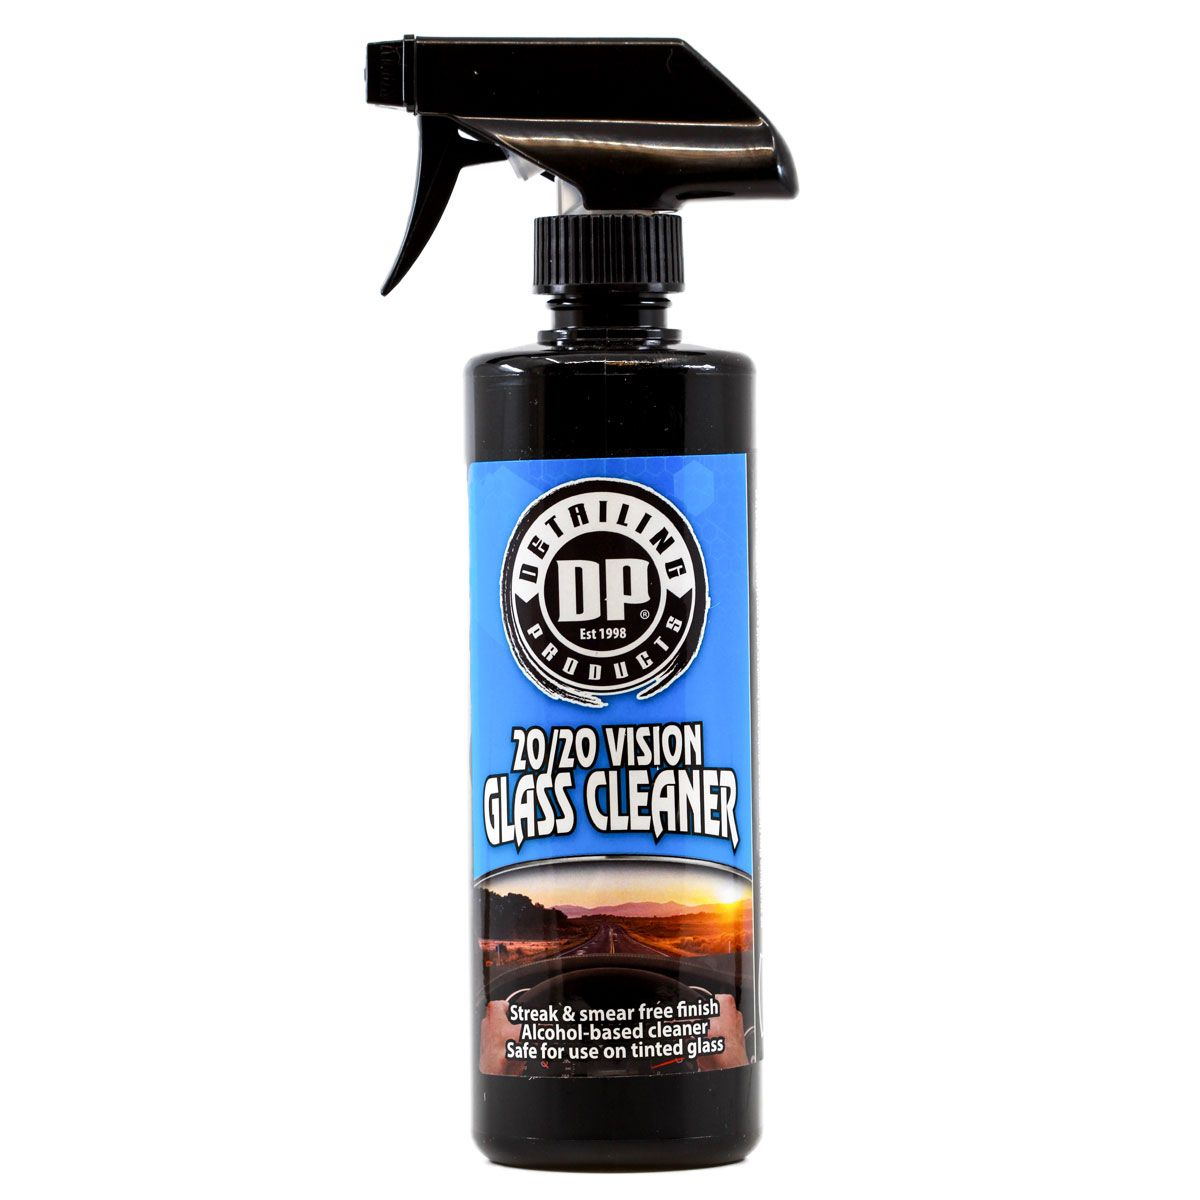 DP Vision Glass Cleaner